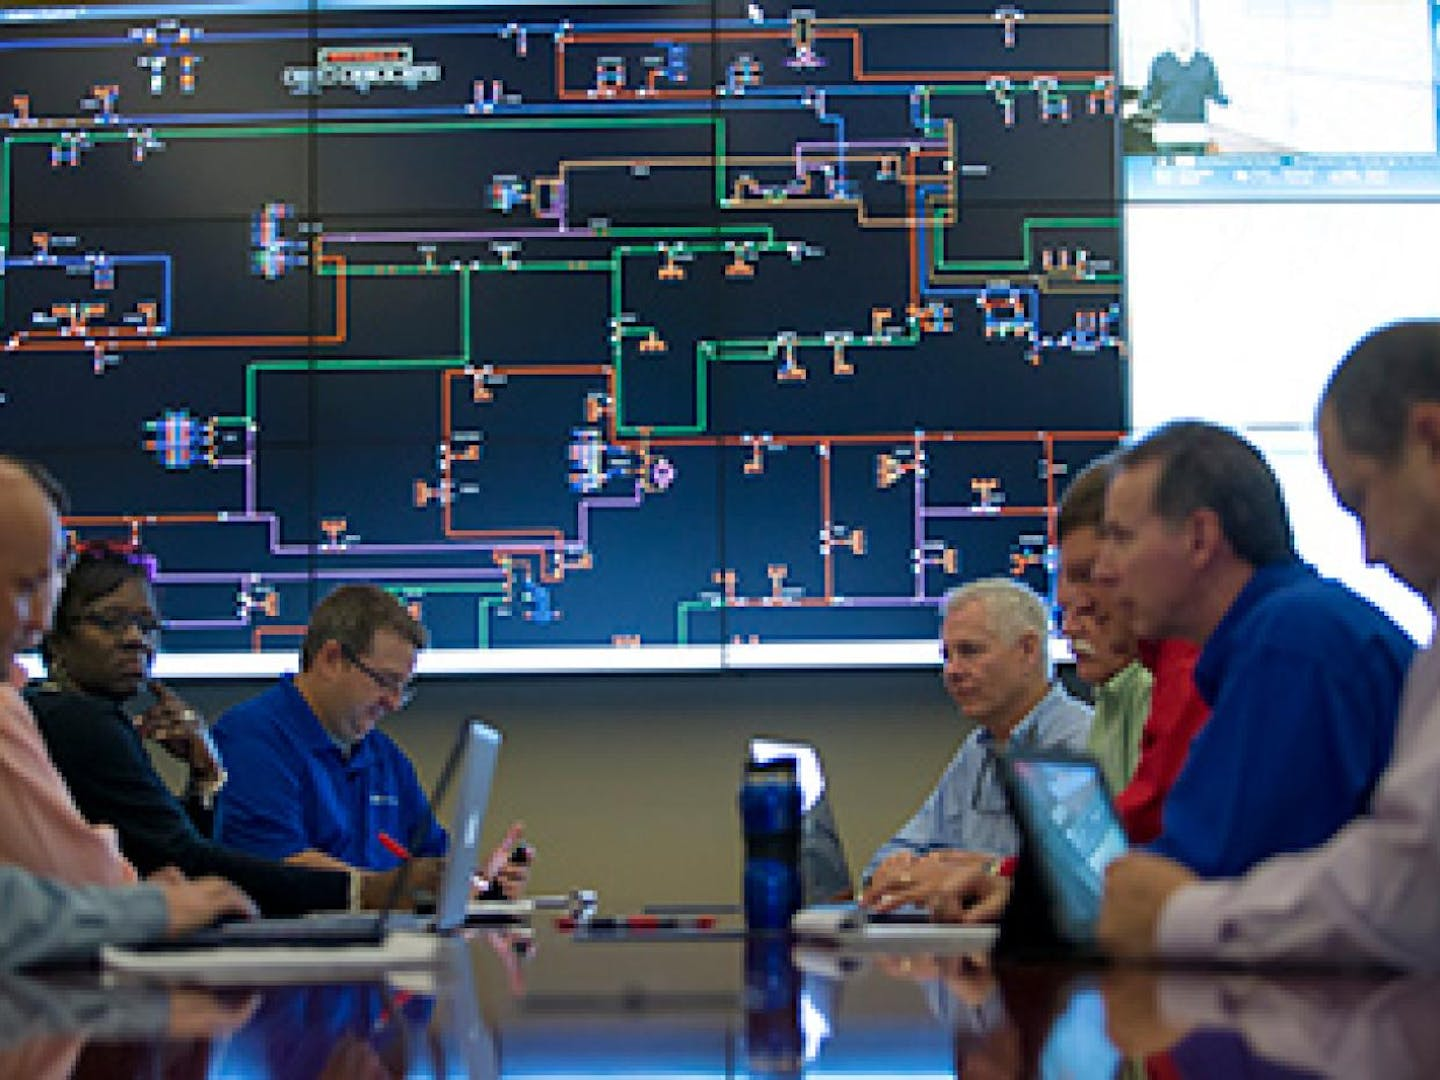 epb-prepared-to-respond-to-impacts-from-irma.jpeg